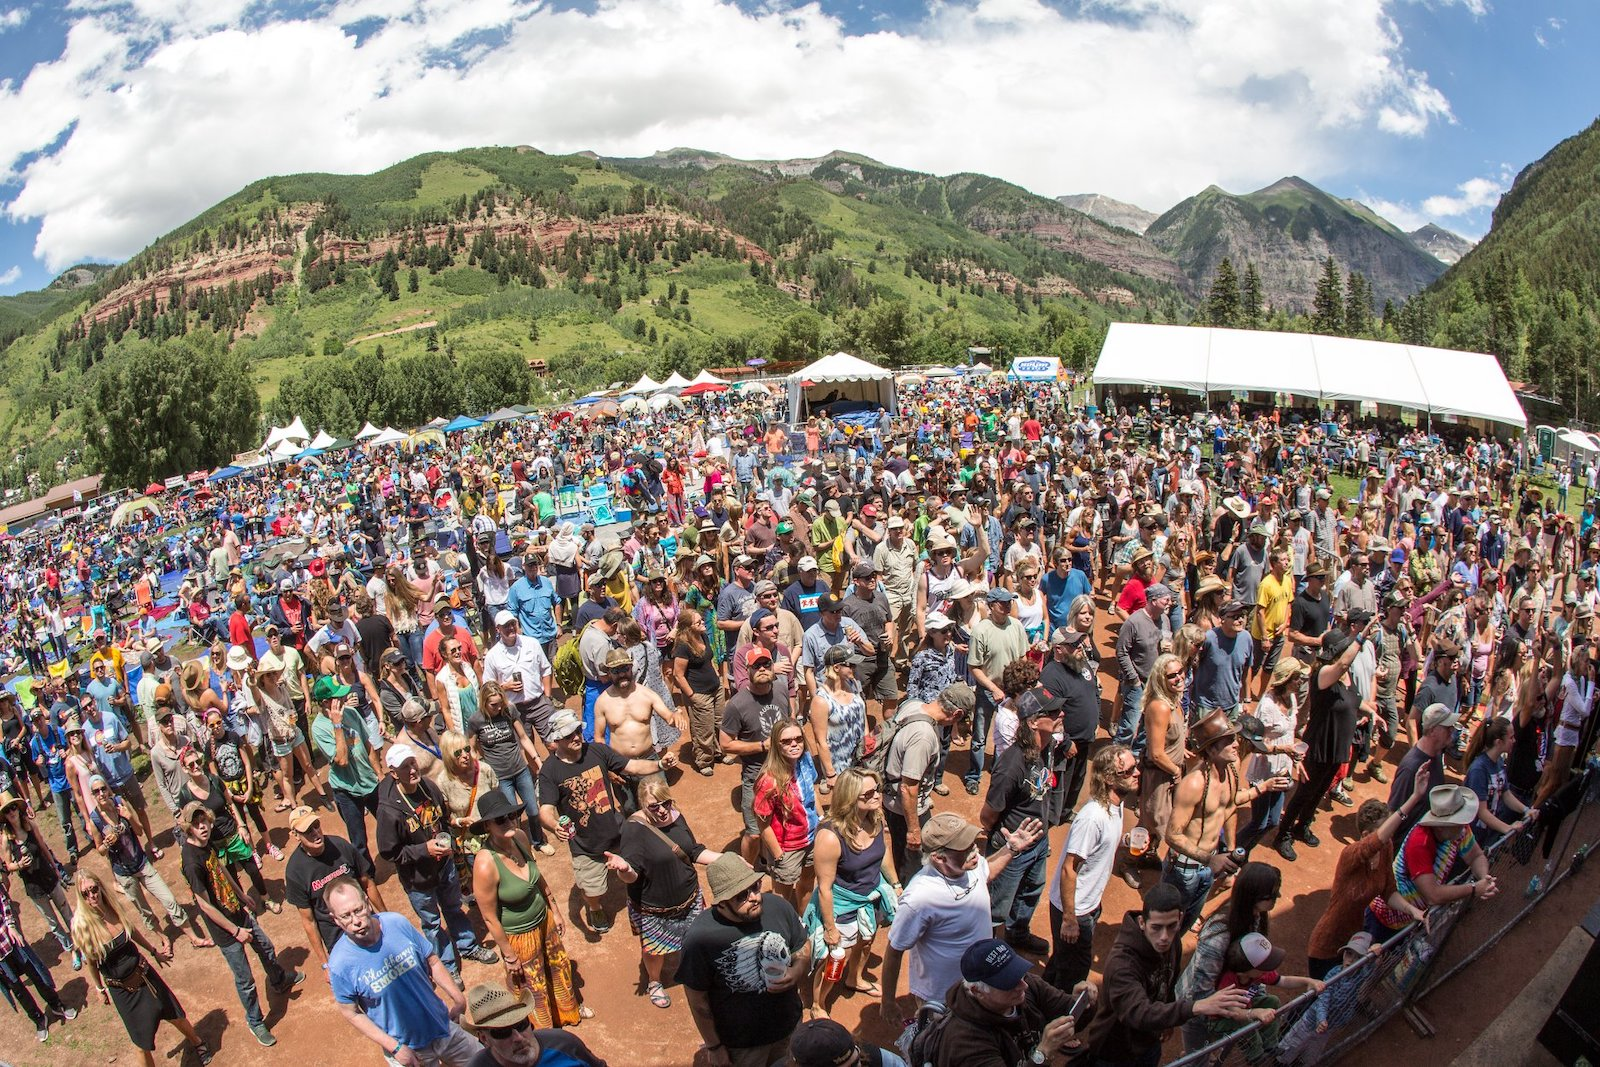 Image of the crowds at Telluride's RIDE festival in Colorado